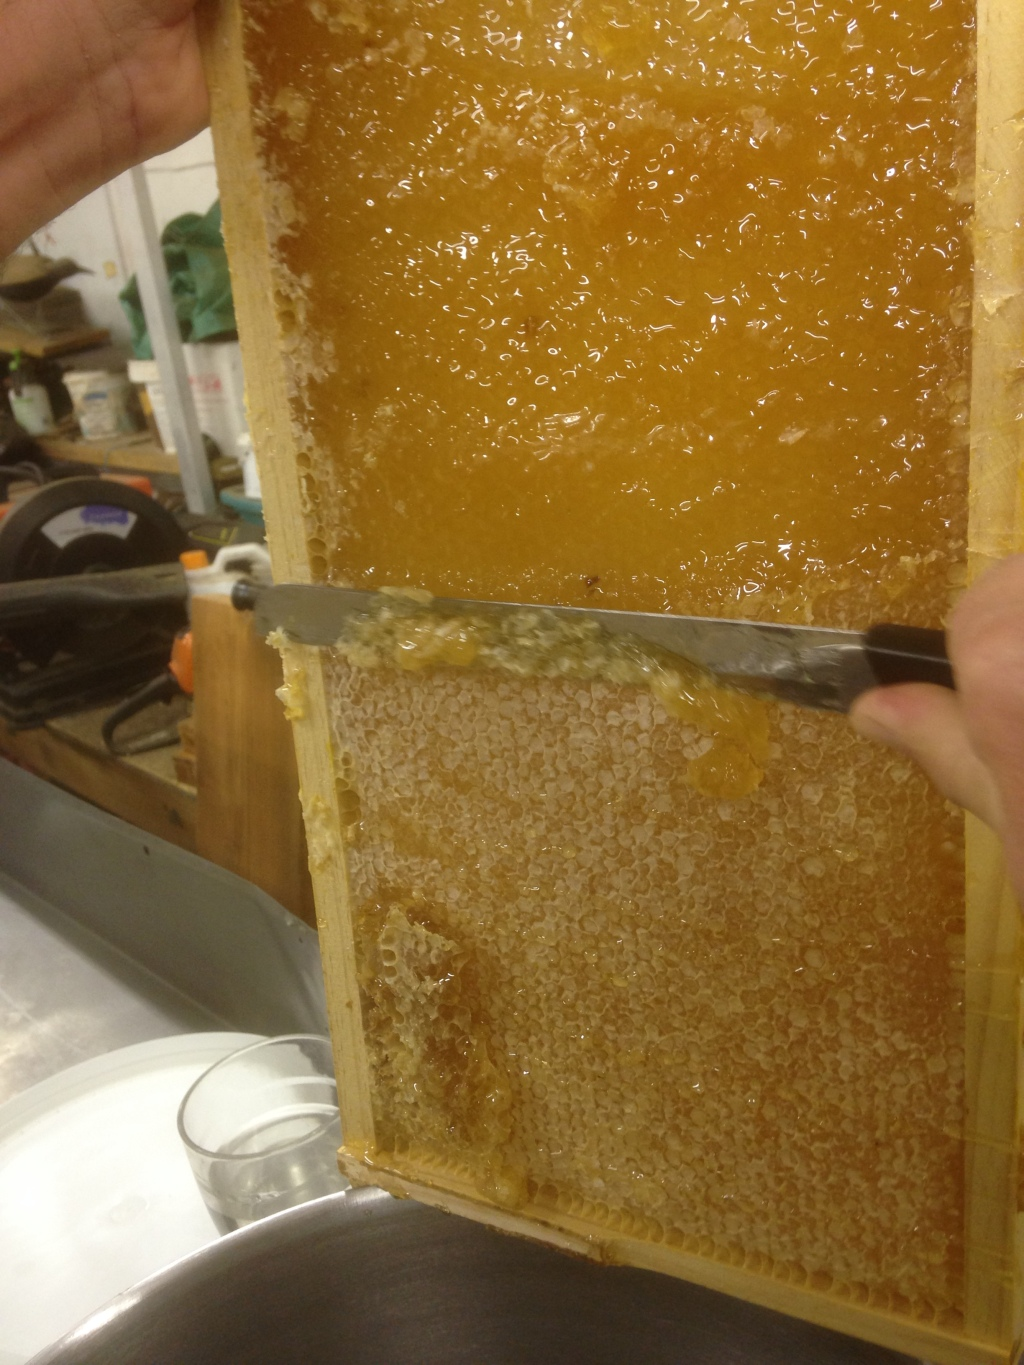 Uncapping the comb. How beautiful does that look?!